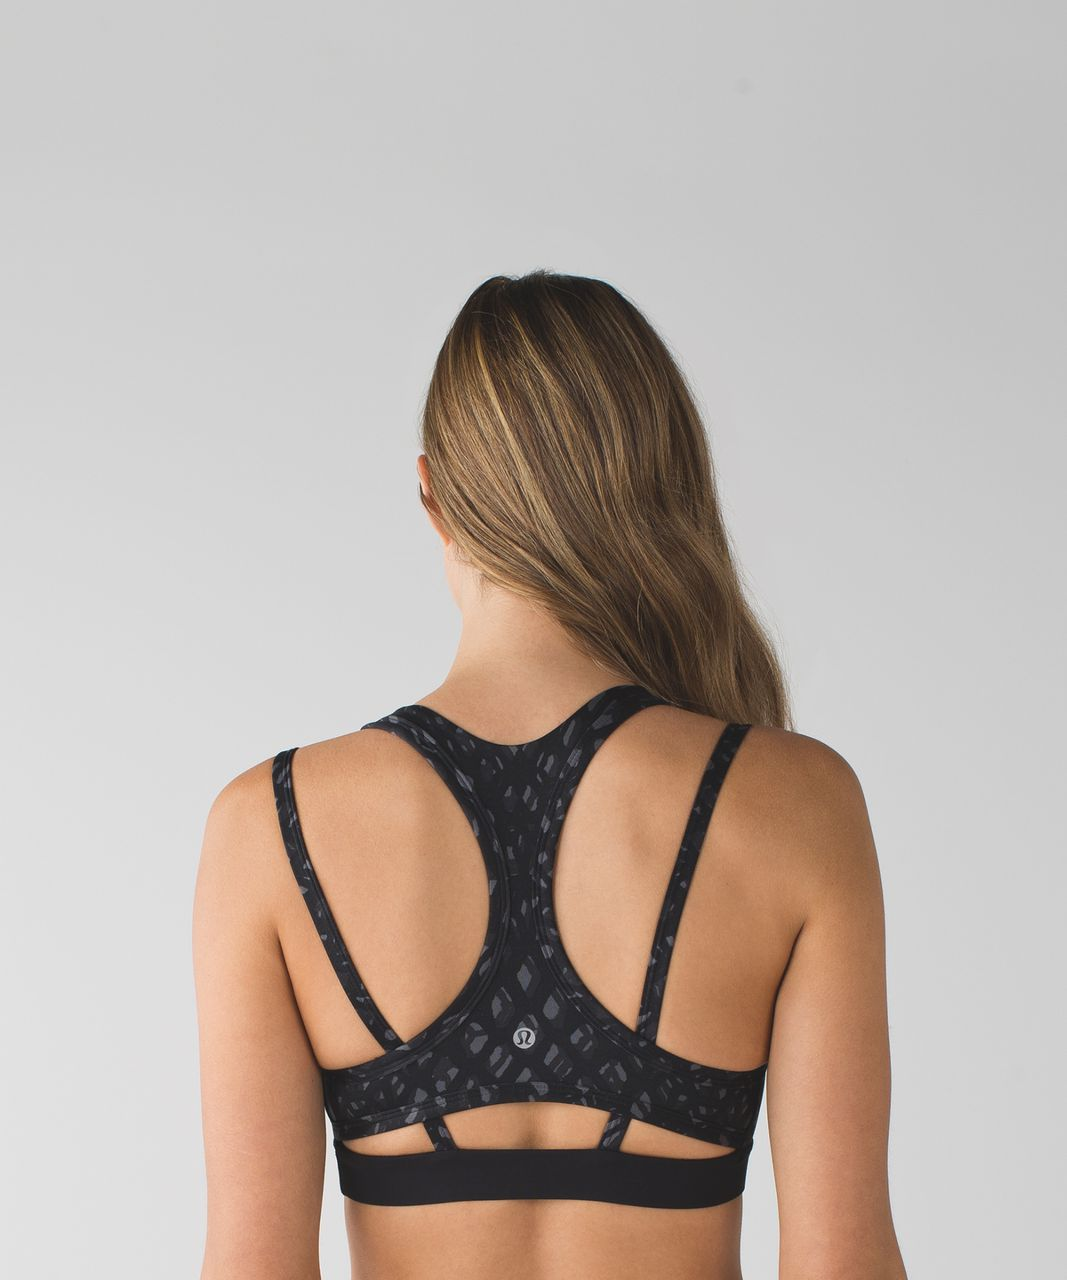 Lululemon Splendour Bra - Lace Play Dark Slate Black / Black